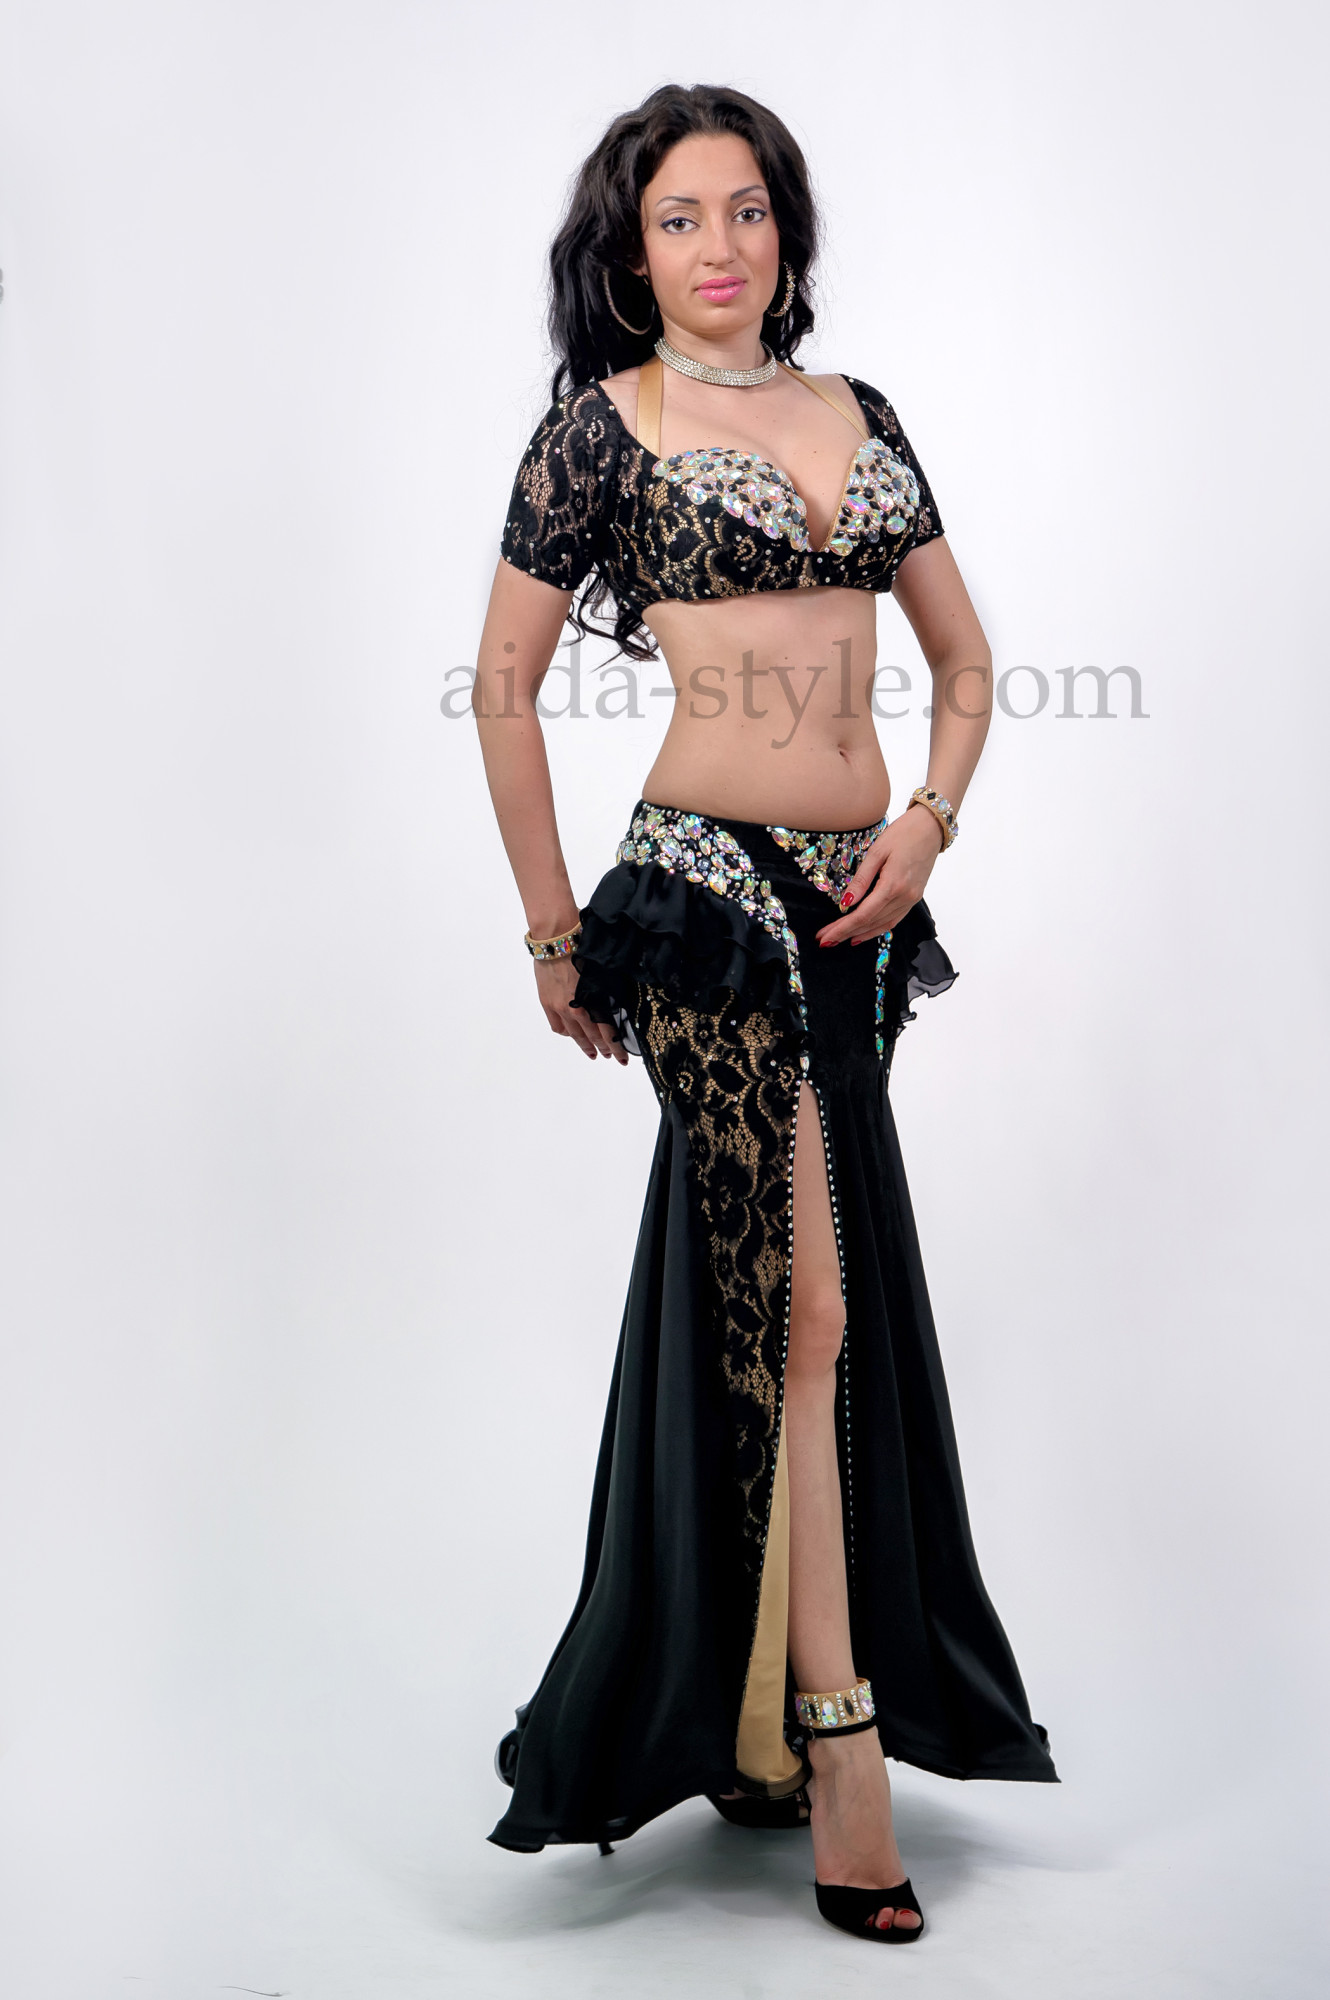 Professional belly dance suit in black and beige color with rich decorations on the bra and hips. The skirt has a cut on the right side